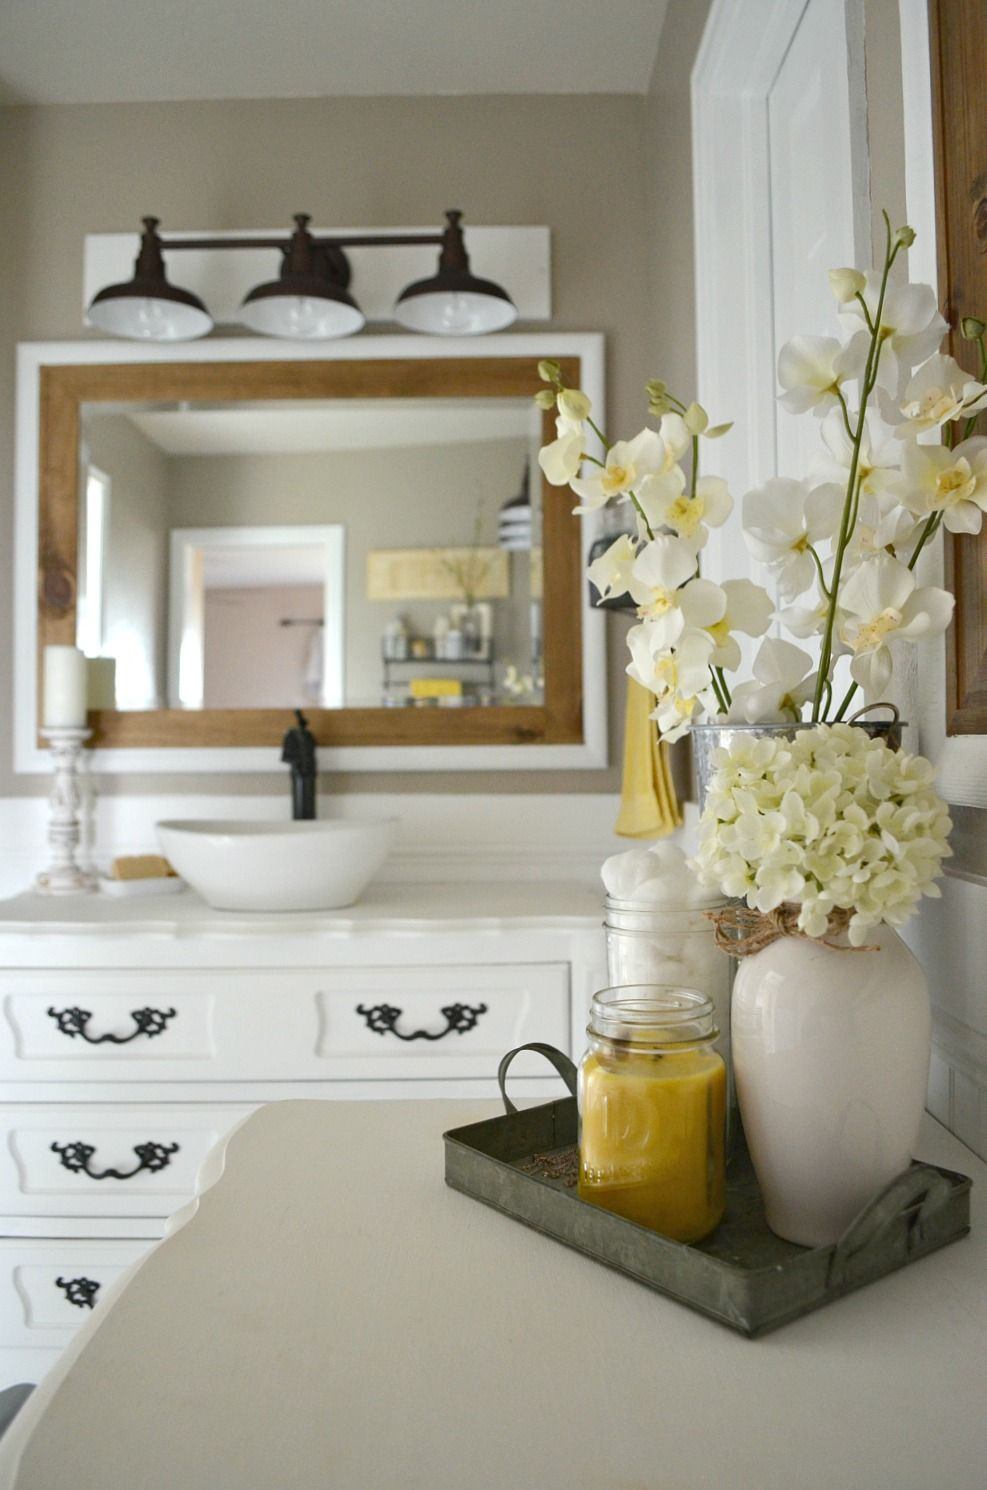 How To Easily Mix Vintage and Modern Decor Bathrooms Decor